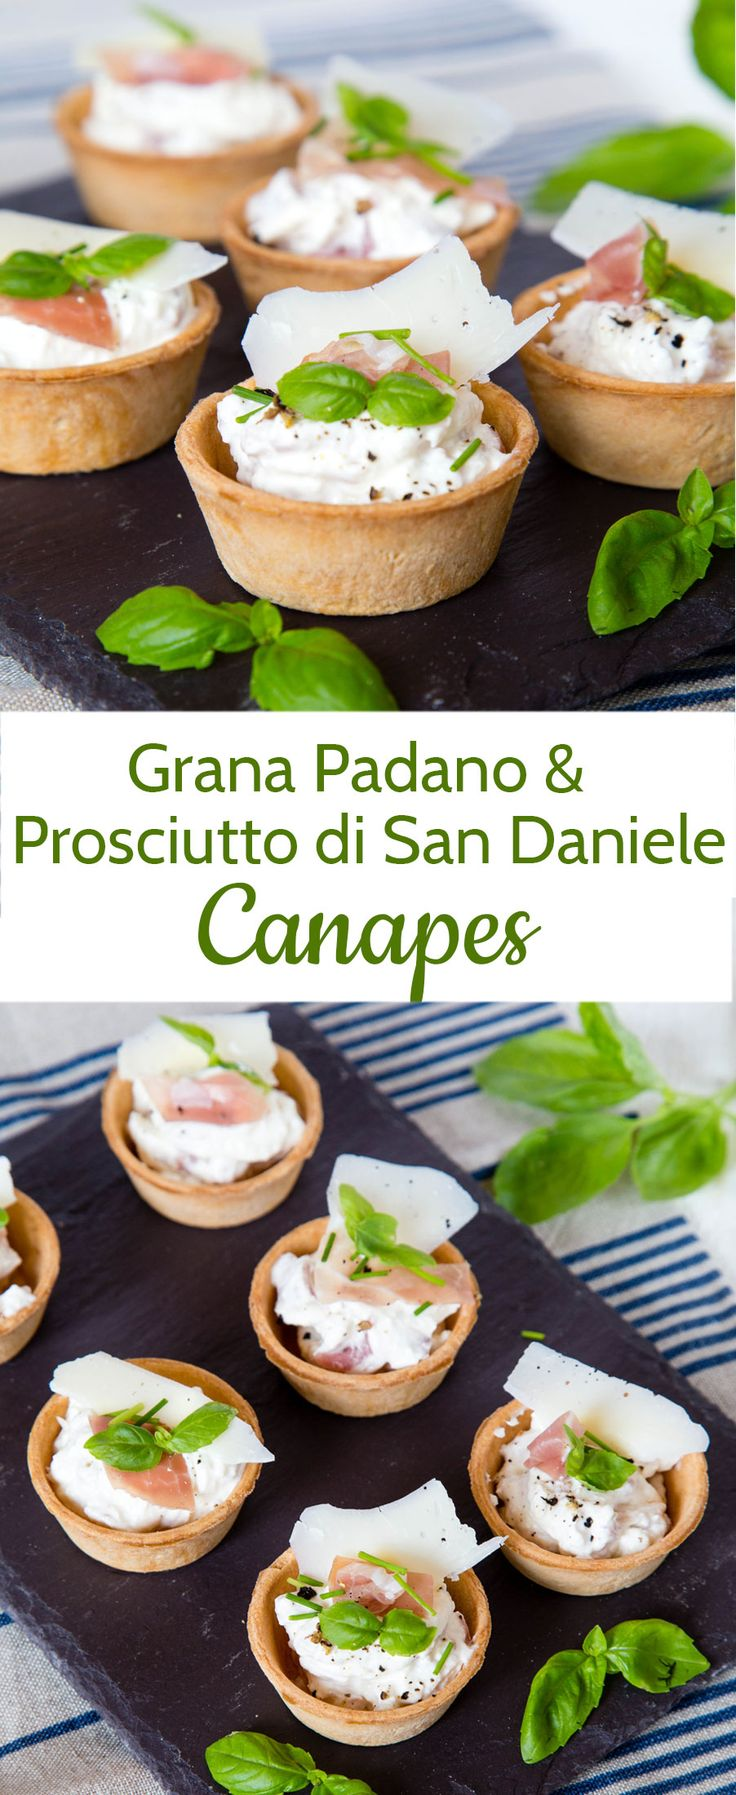 Perfect Party Food! These Grana Padano & Prosciutto di San Daniele Canapés are quick and easy to make and will have your guests flocking around you when you serve them!